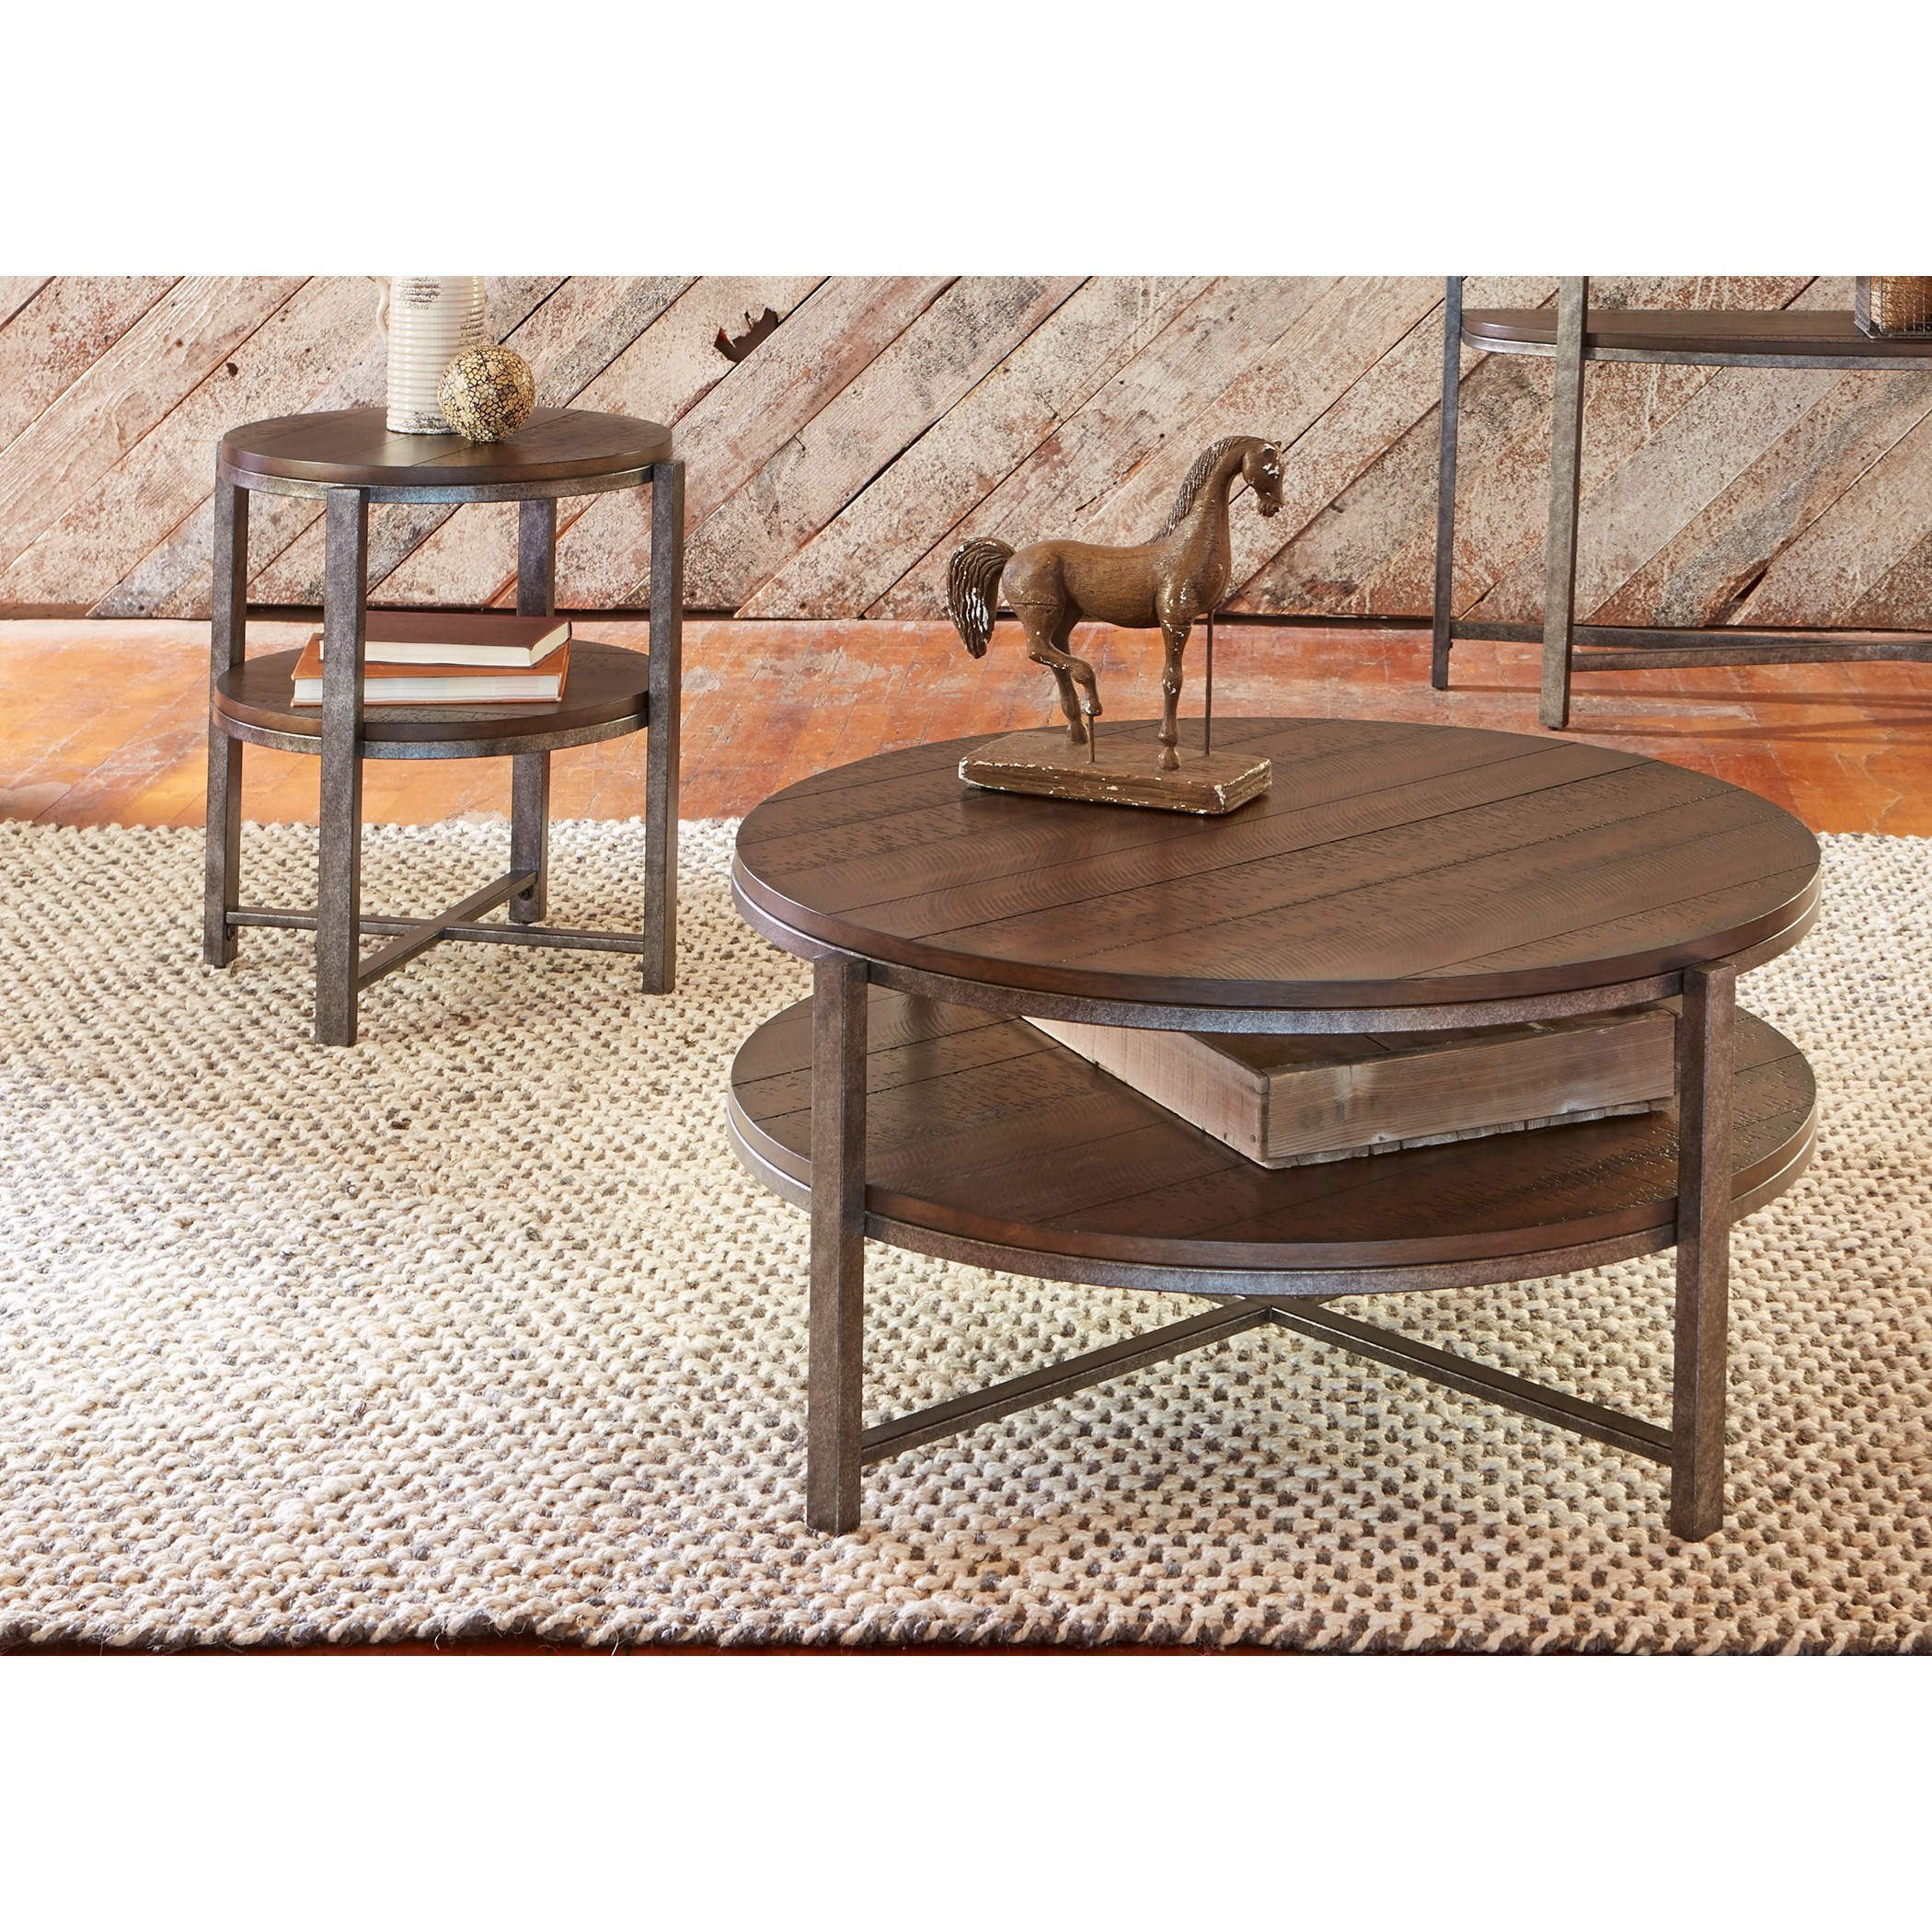 Breckinridge 3 Piece Round Occasional Table Set by Liberty Furniture at Northeast Factory Direct